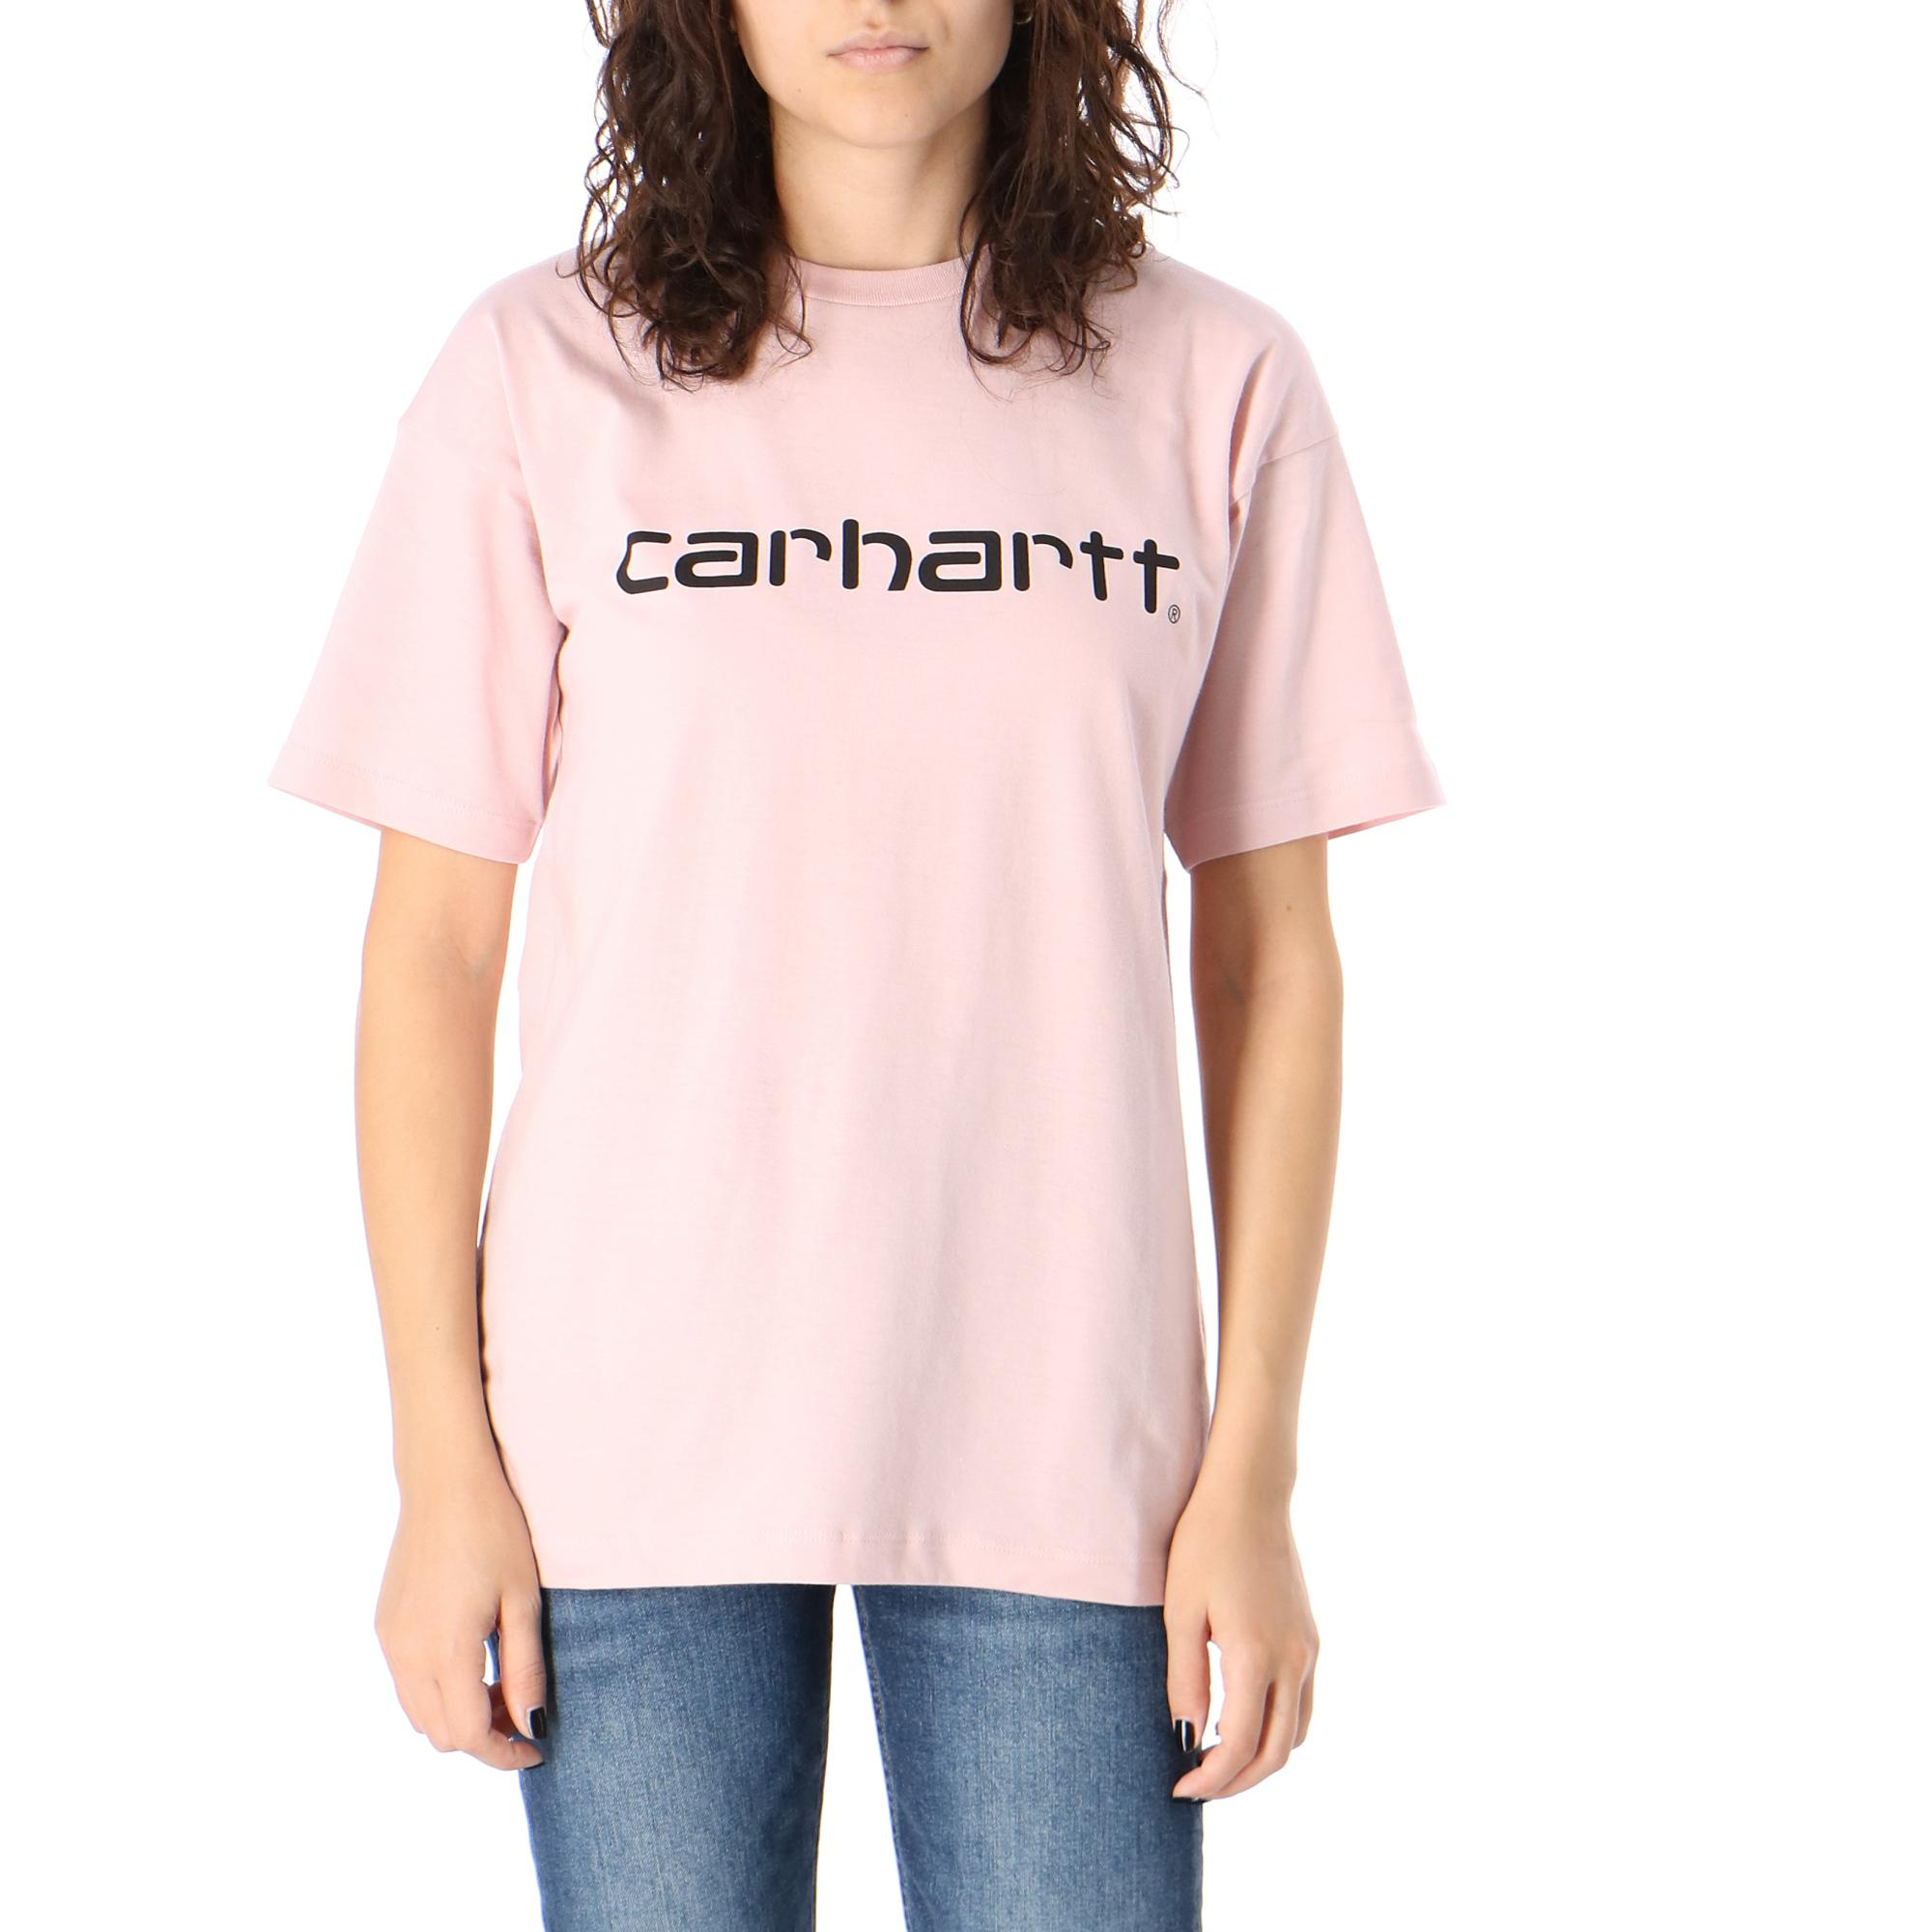 Carhartt W S/s Script T-shirt Frosted pink black